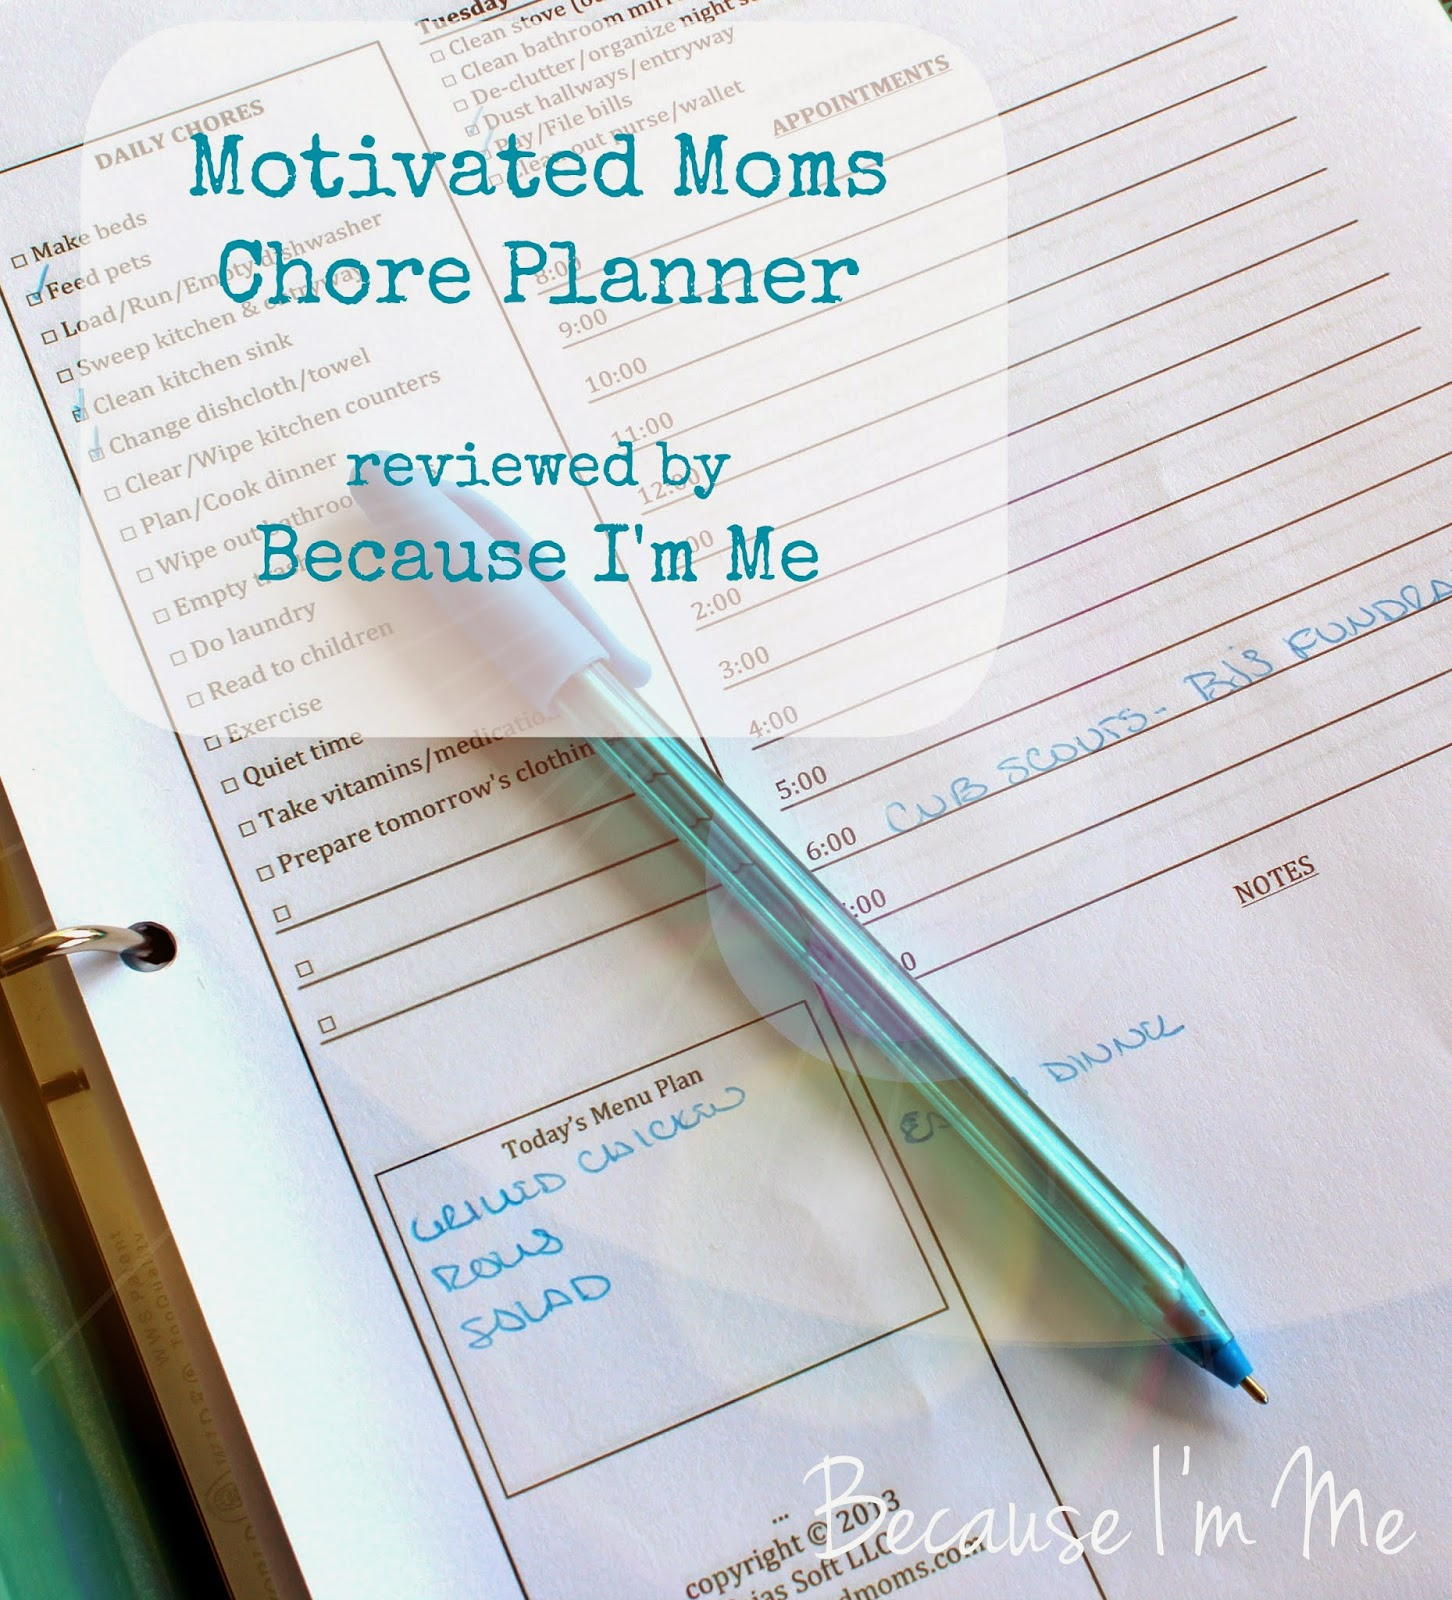 Because I'm Me reviews Motivated Moms daily chore planner - a must for staying organized and on top of the housework